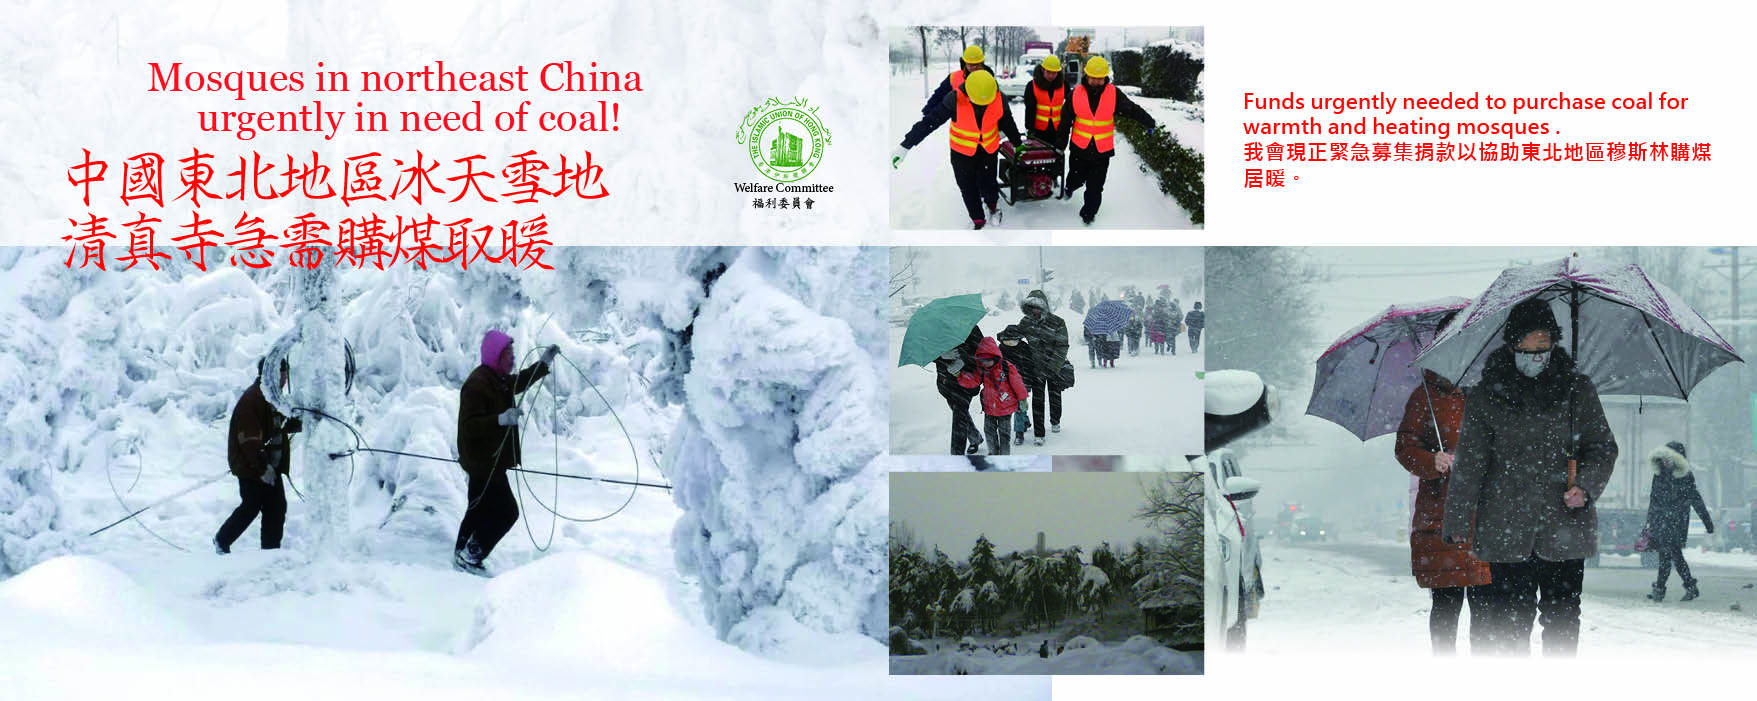 Mosques in northeast China urgently in need of coal!